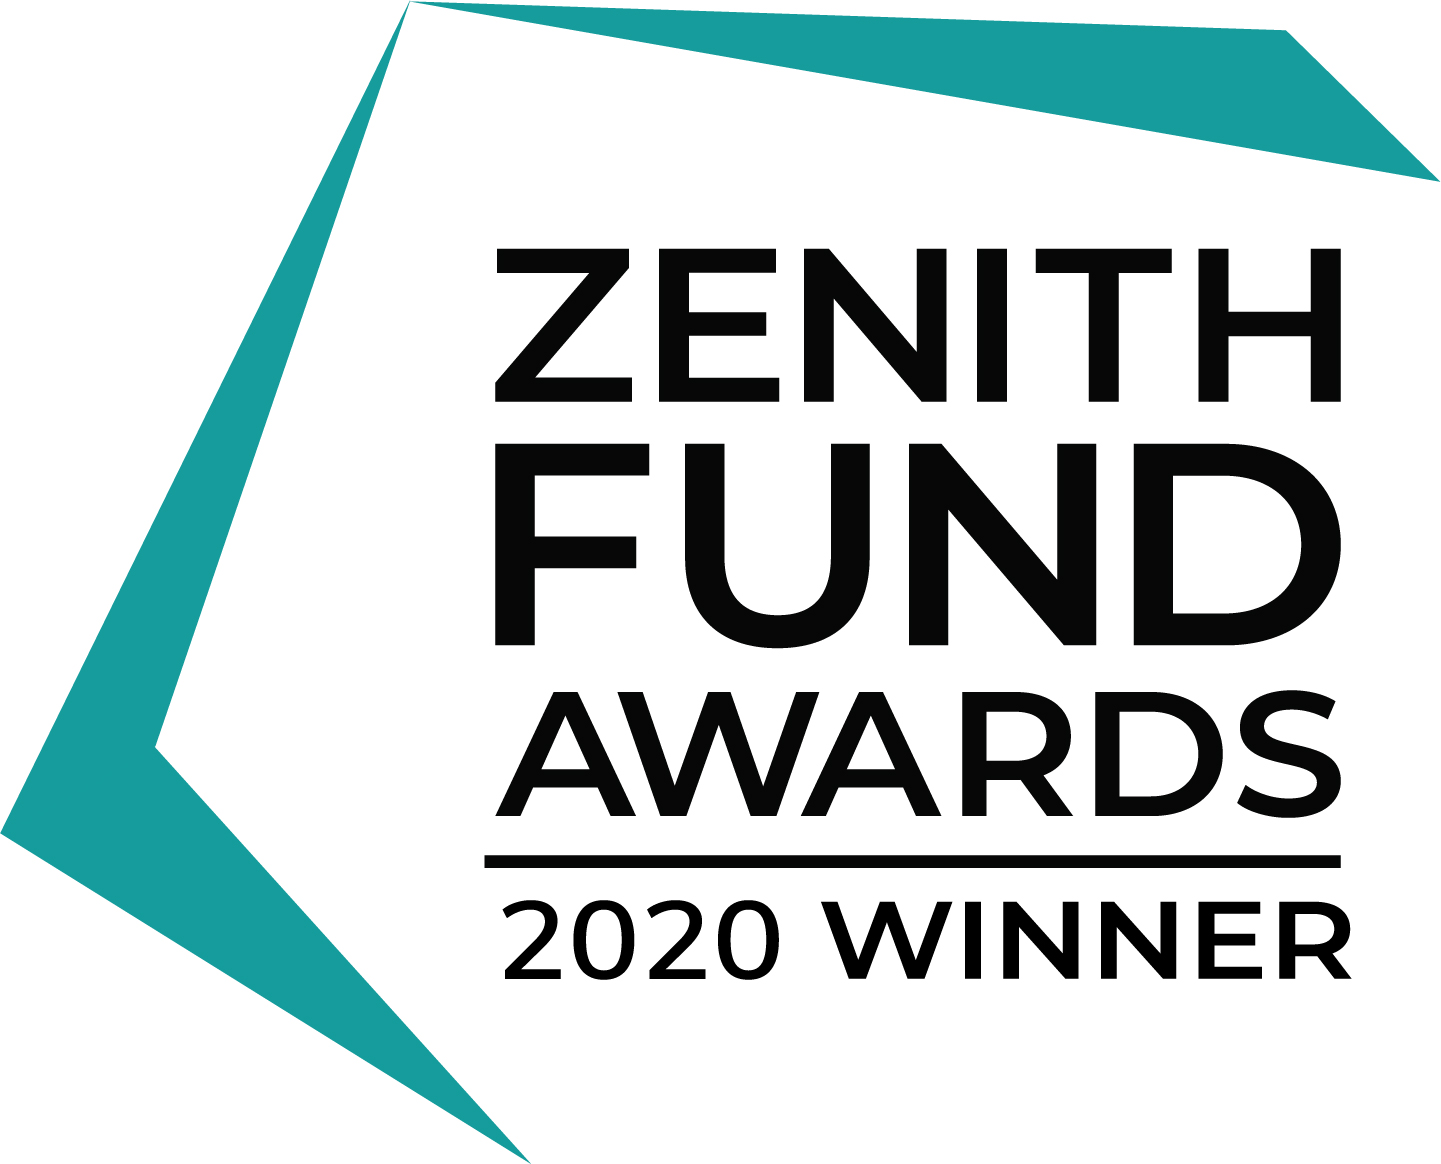 Zenith Fund Awards